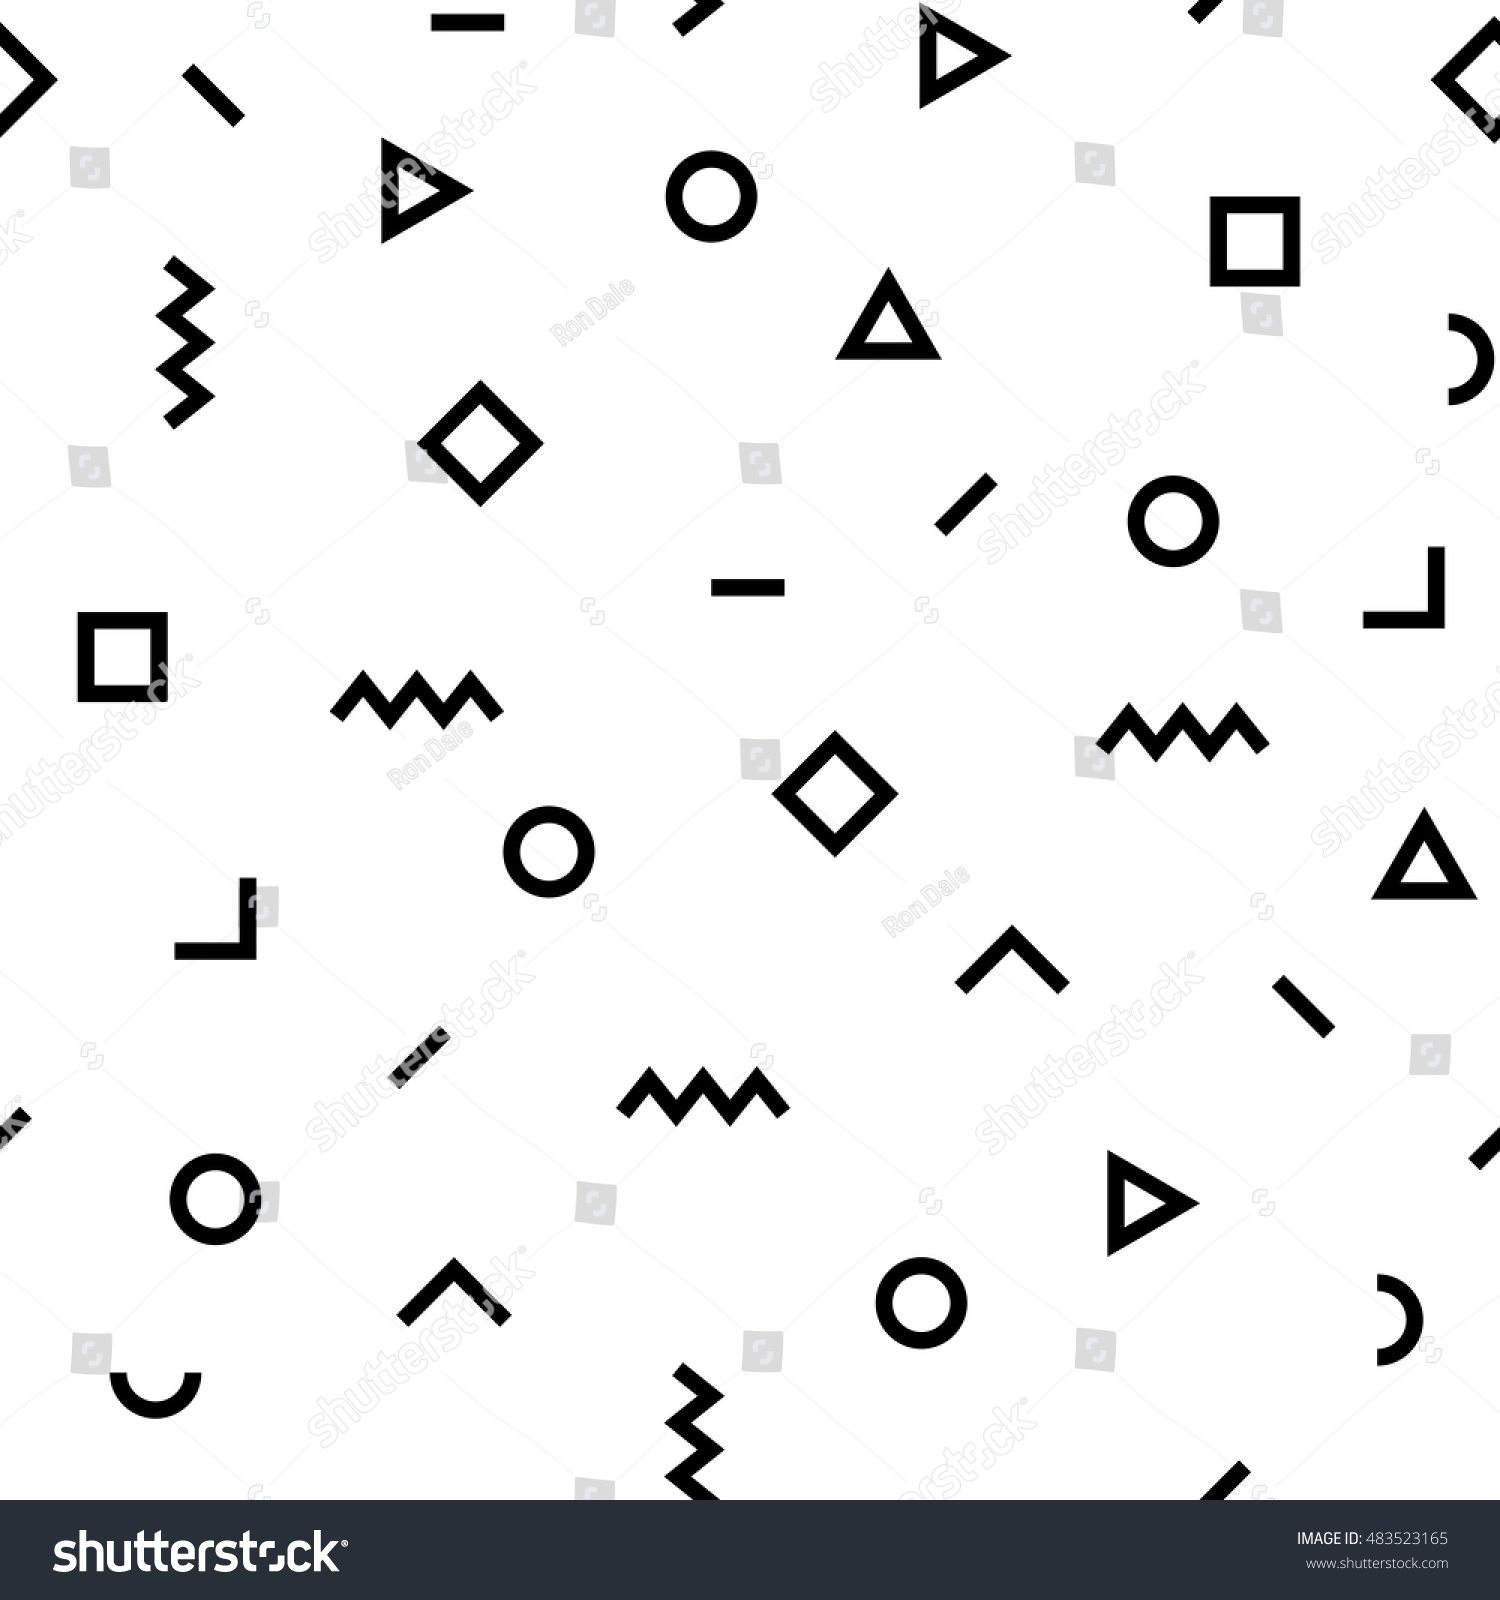 Vector Hipster Pattern Black White Geometric Stock Vector ...